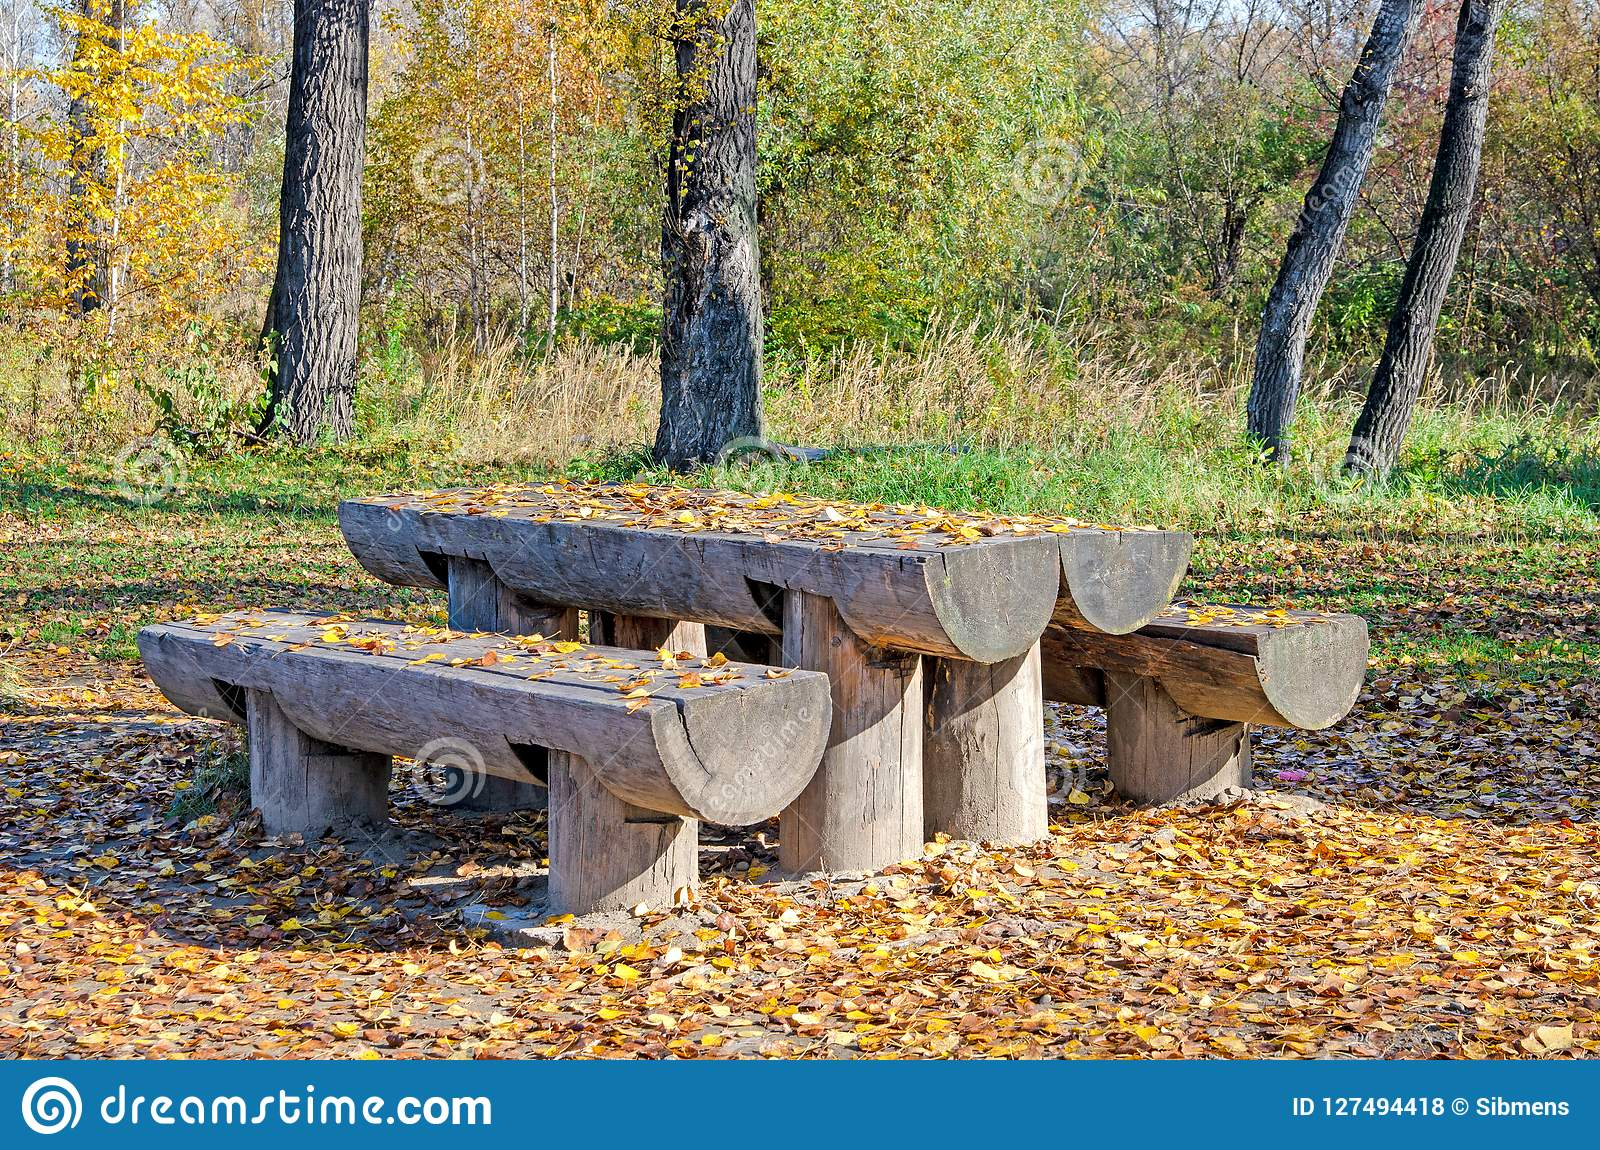 Outdoor Furniture From A Tree For A Garden Benches And A Table Stock Photo Image Of Autumn Background 127494418